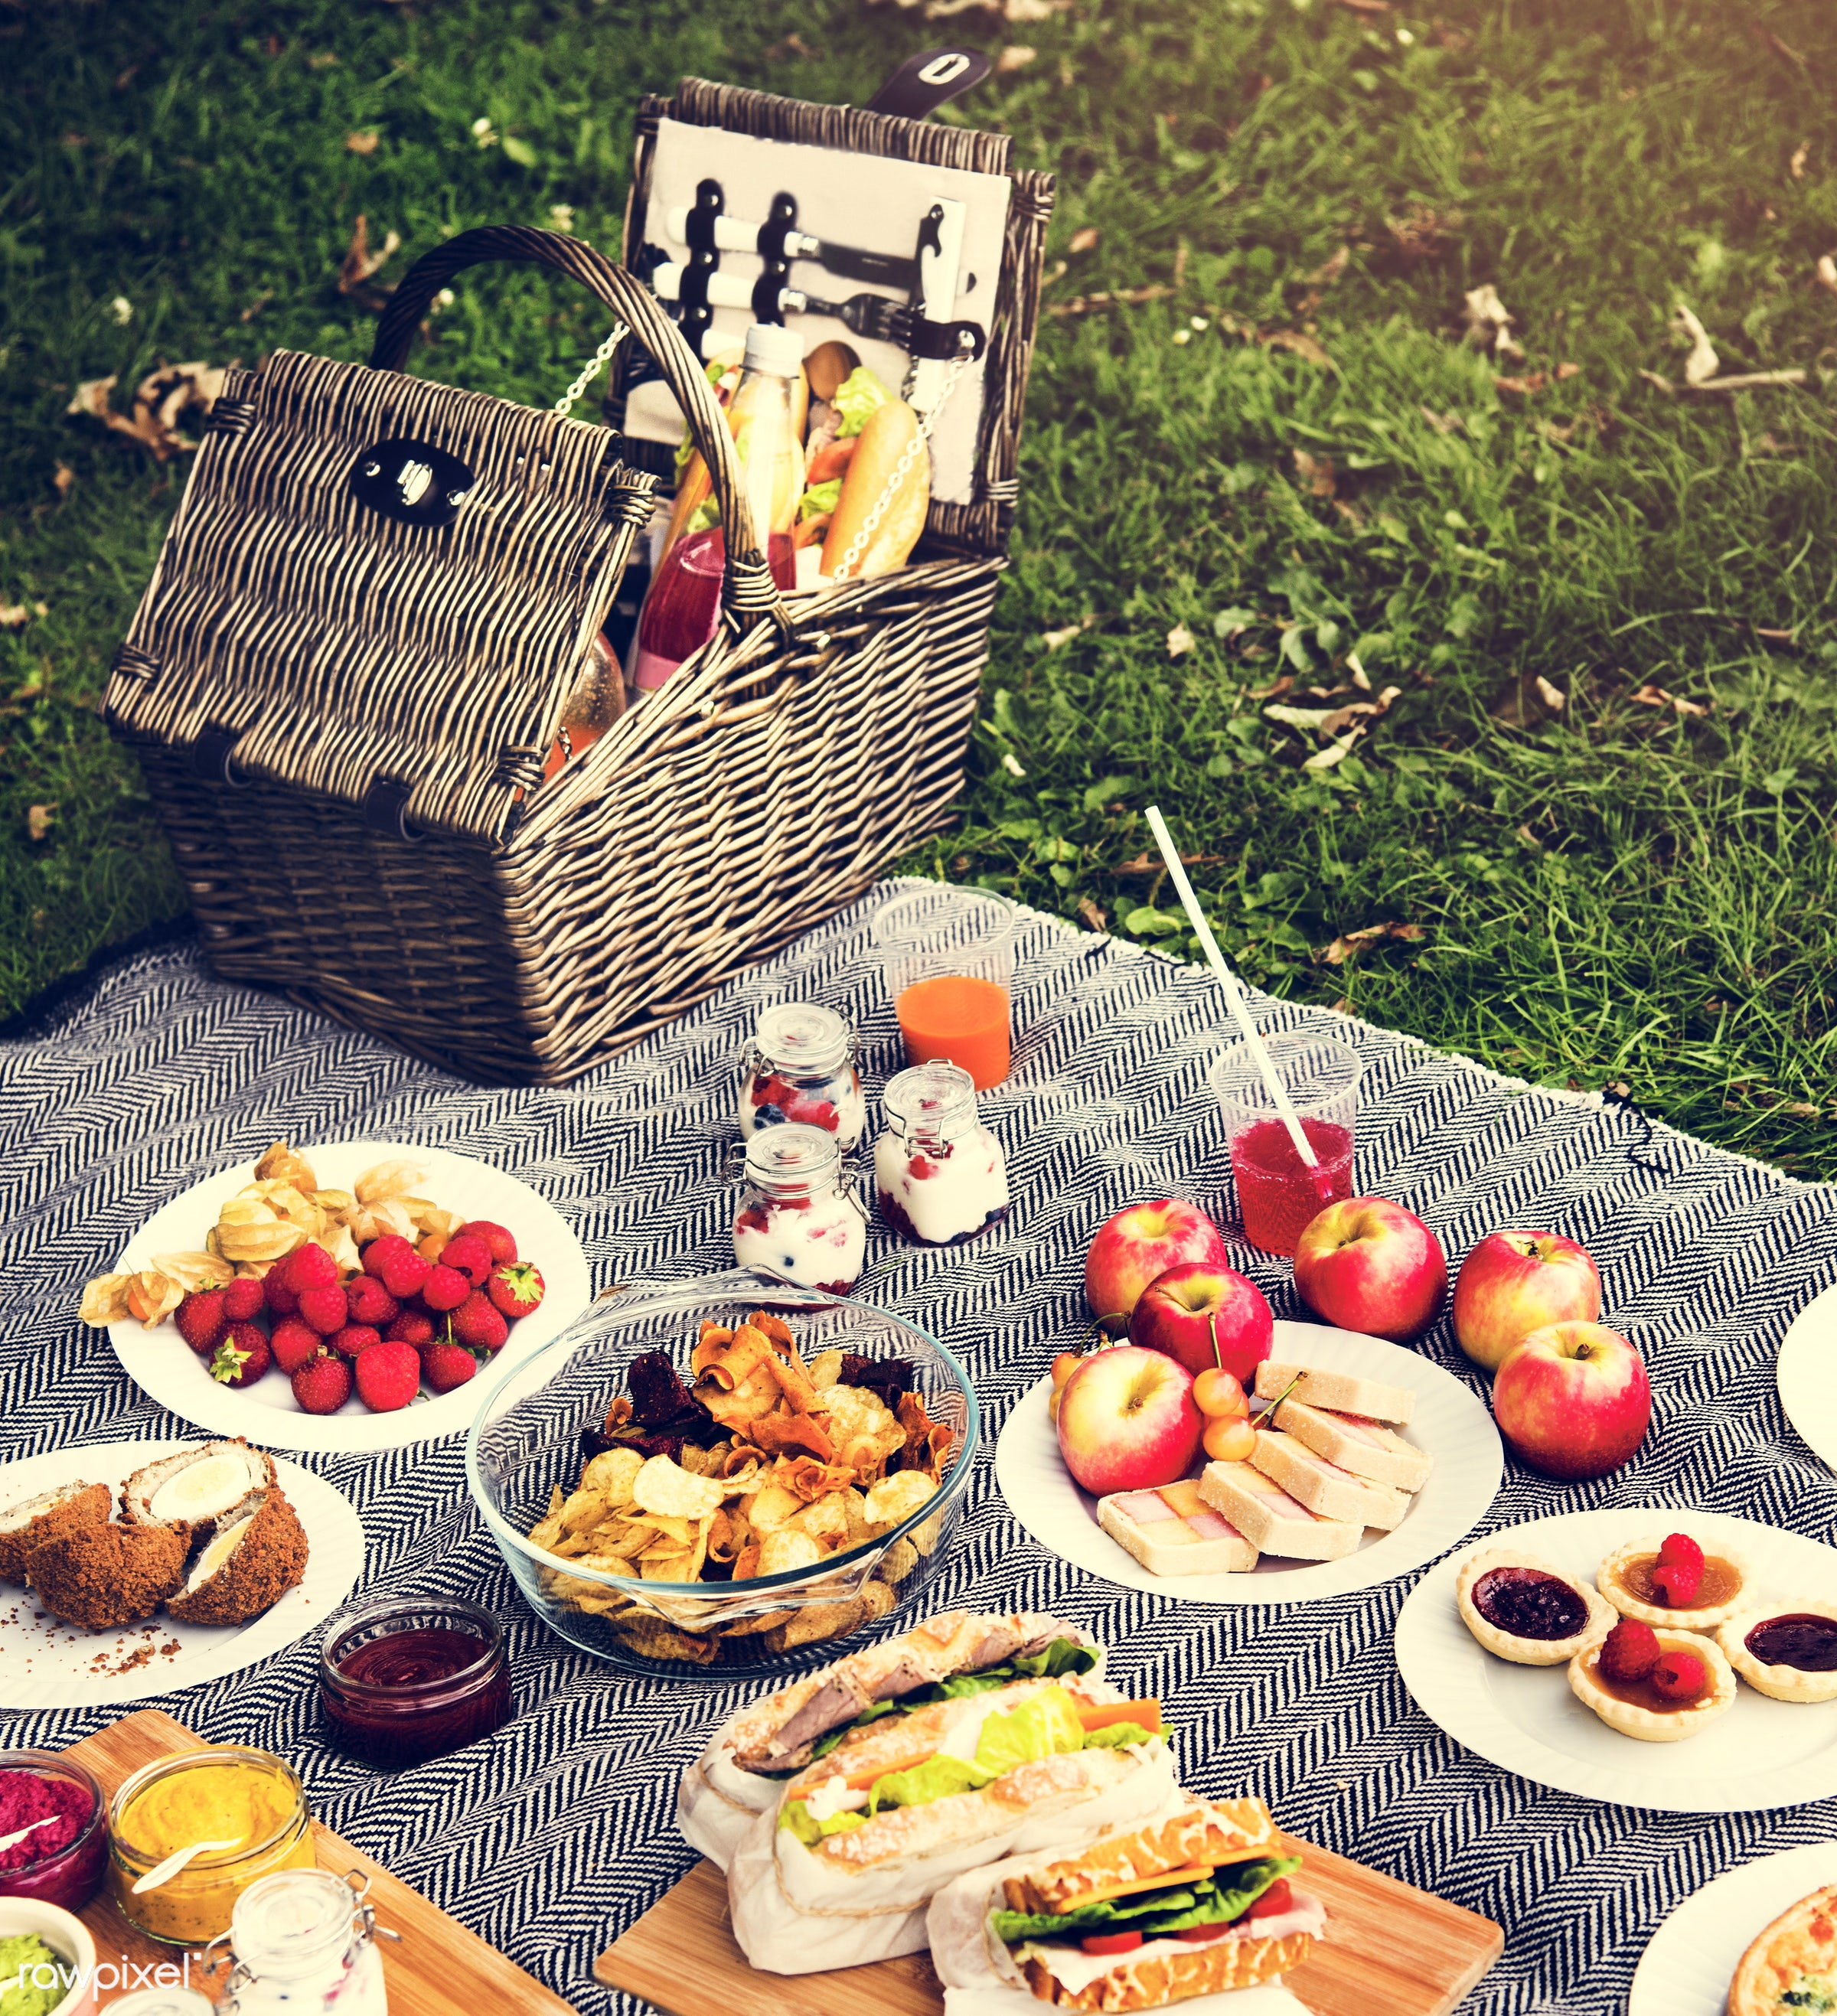 apple, basket, cherry, chips, dessert, drinks, environment, environmental, field, food, fruit, garden, grass, holiday,...